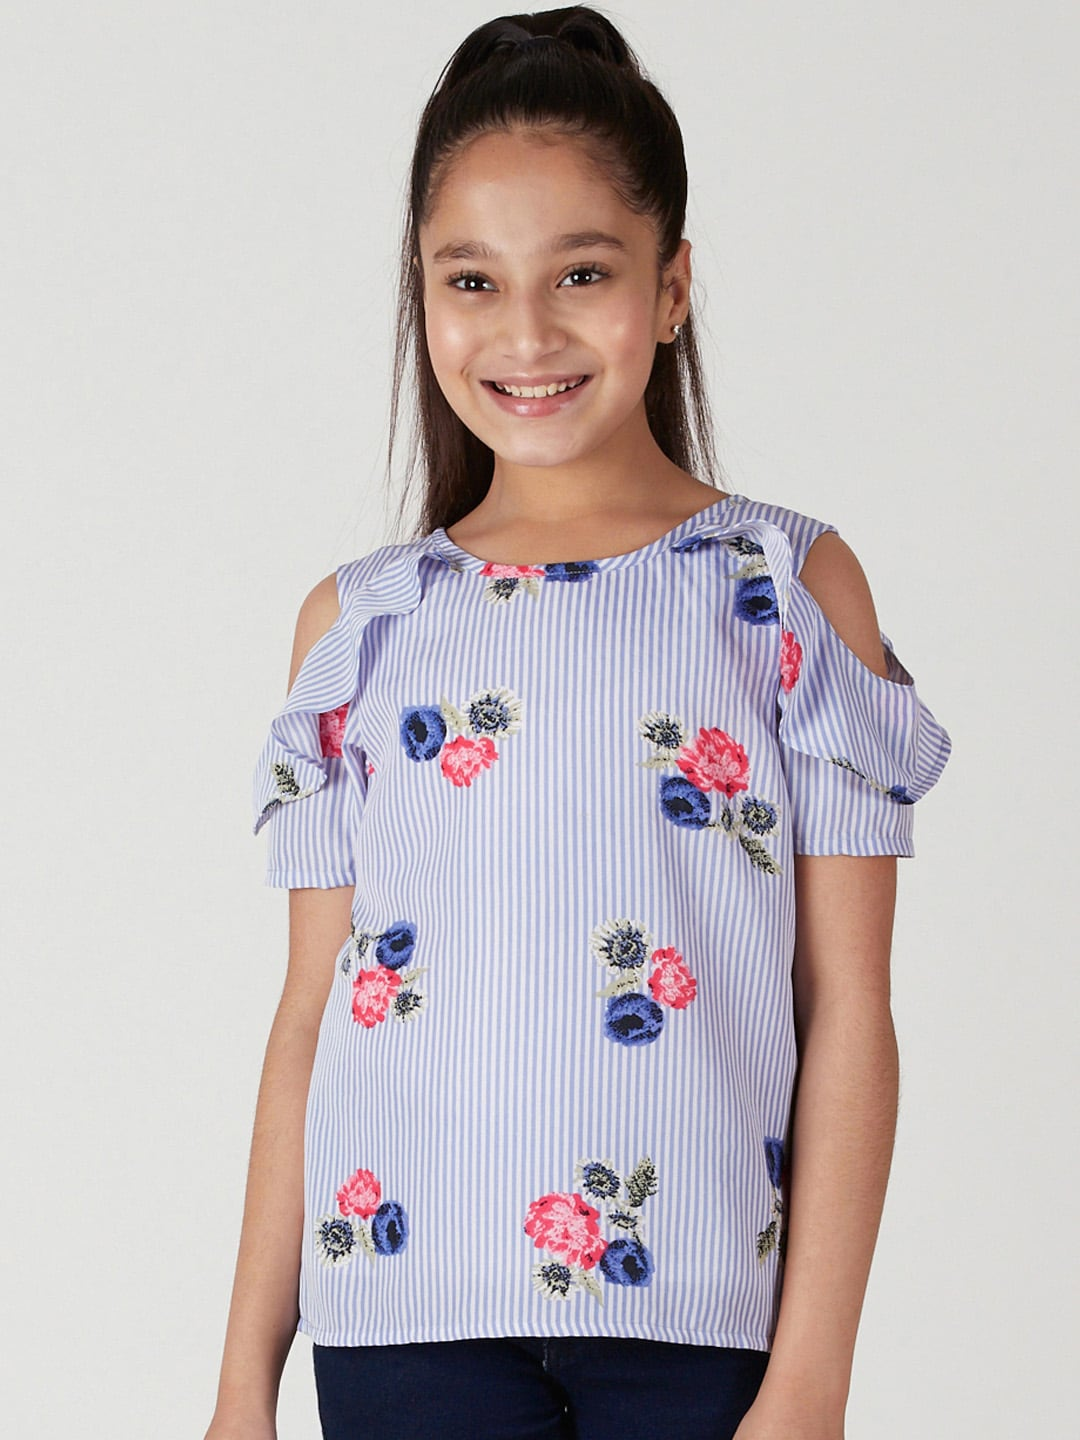 05d11be8123 Girls Tops - Buy Stylish Top for Girls Online in India